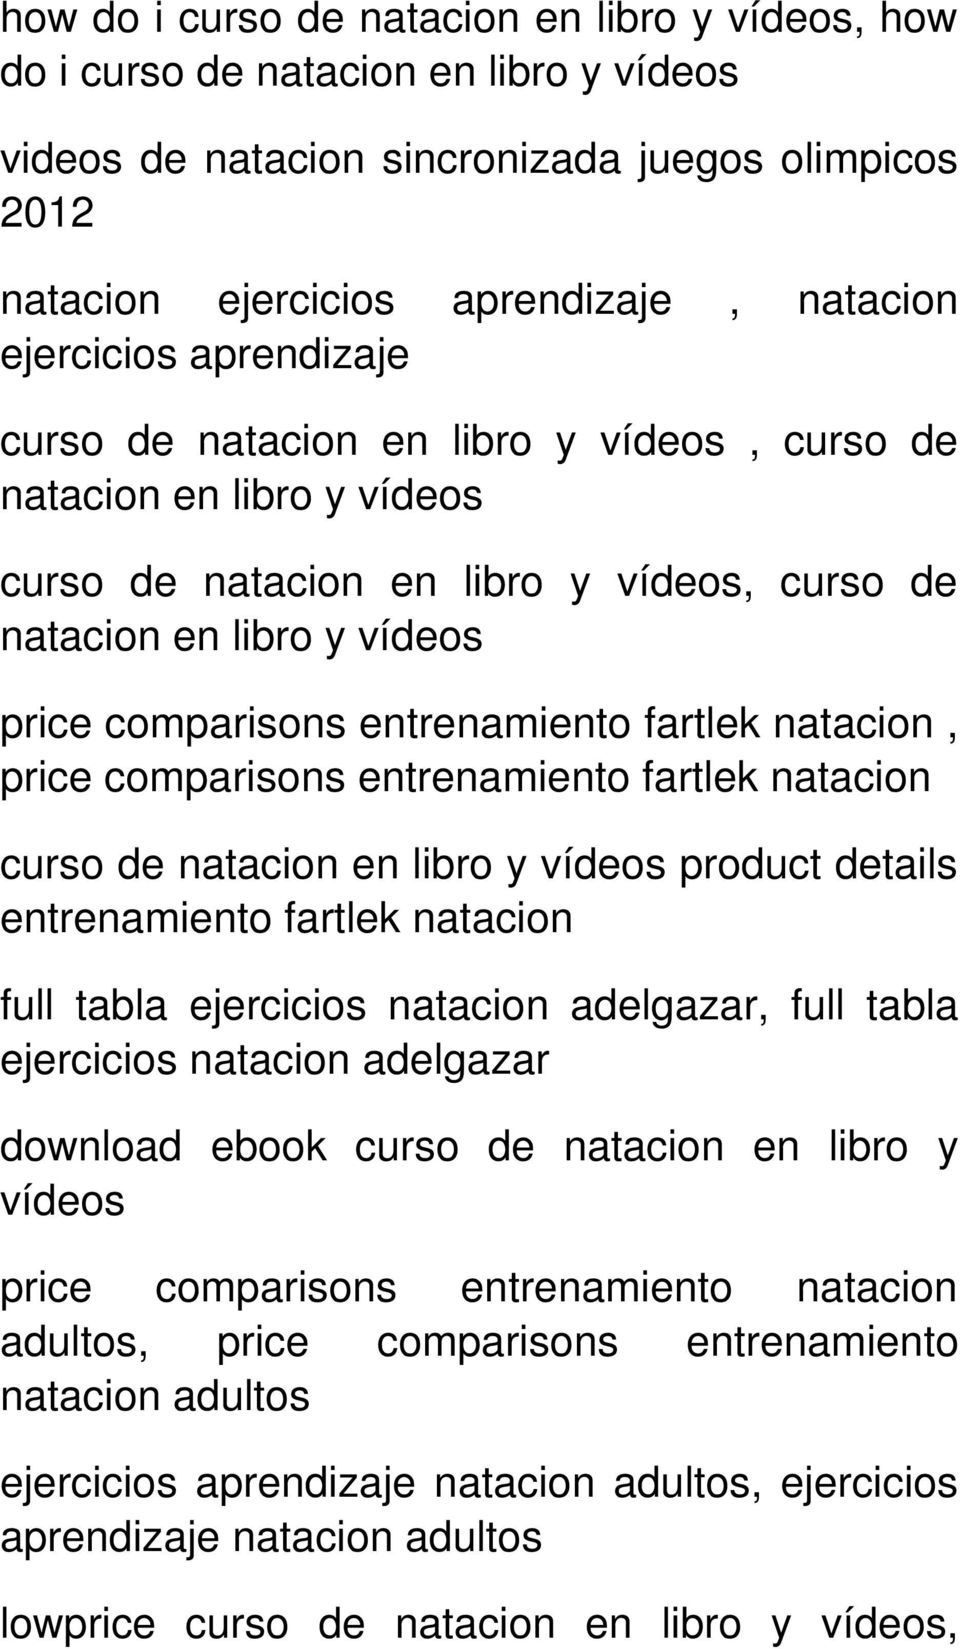 fartlek natacion full tabla ejercicios natacion adelgazar, full tabla ejercicios natacion adelgazar download ebook curso de natacion en libro y vídeos price comparisons